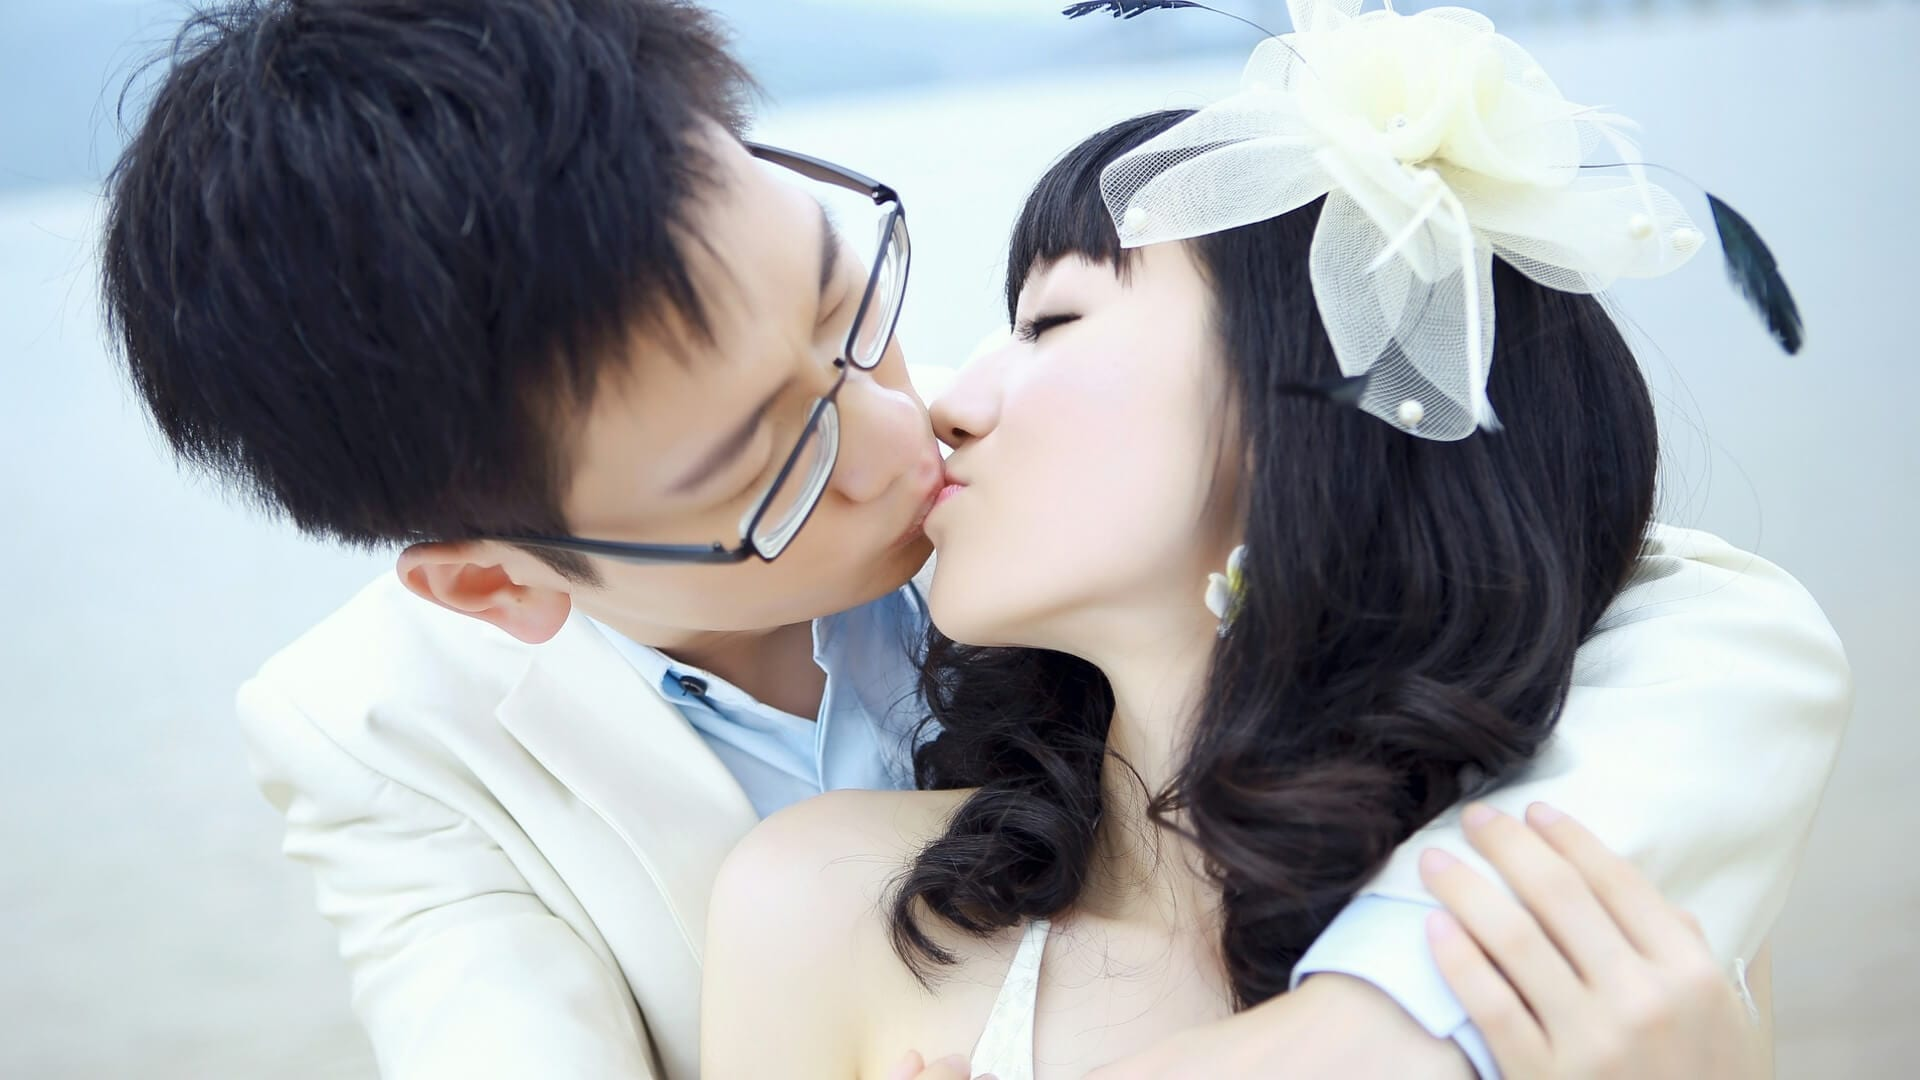 A Chinese couple is kissing on their wedding day in China.